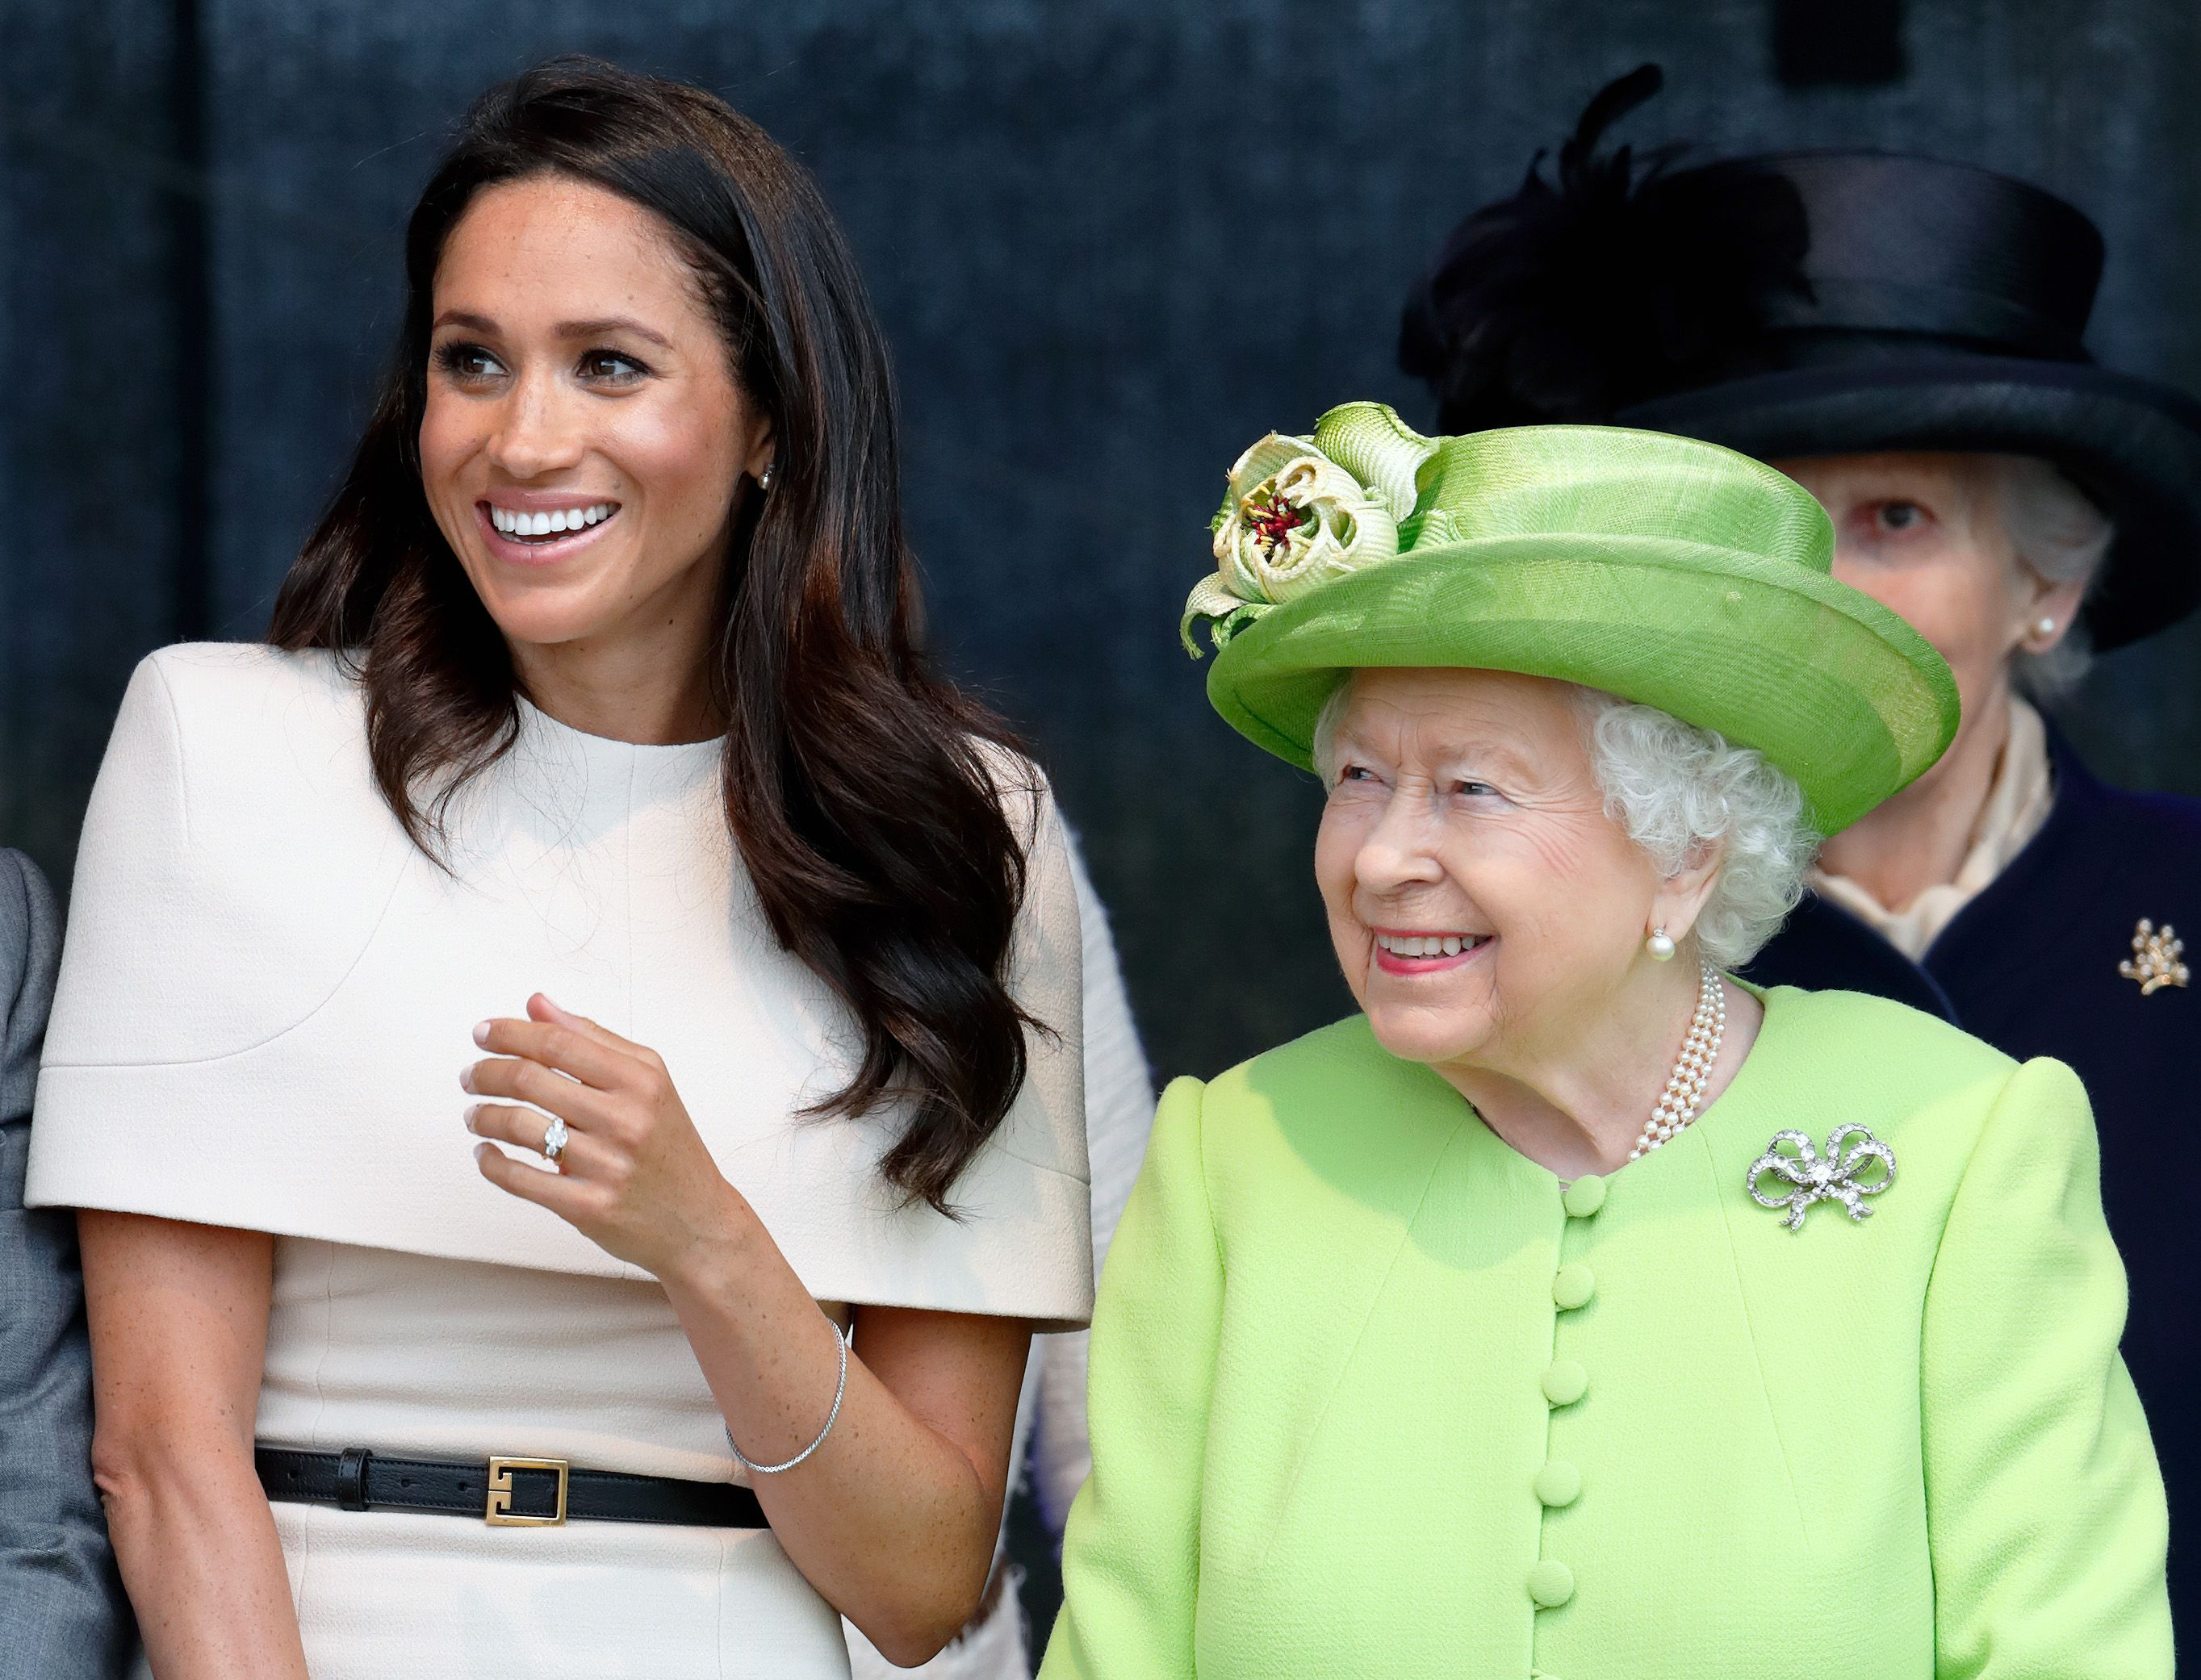 The Queen Says She's 'Particularly Proud' Of Meghan Markle In Her Official Megxit Statement